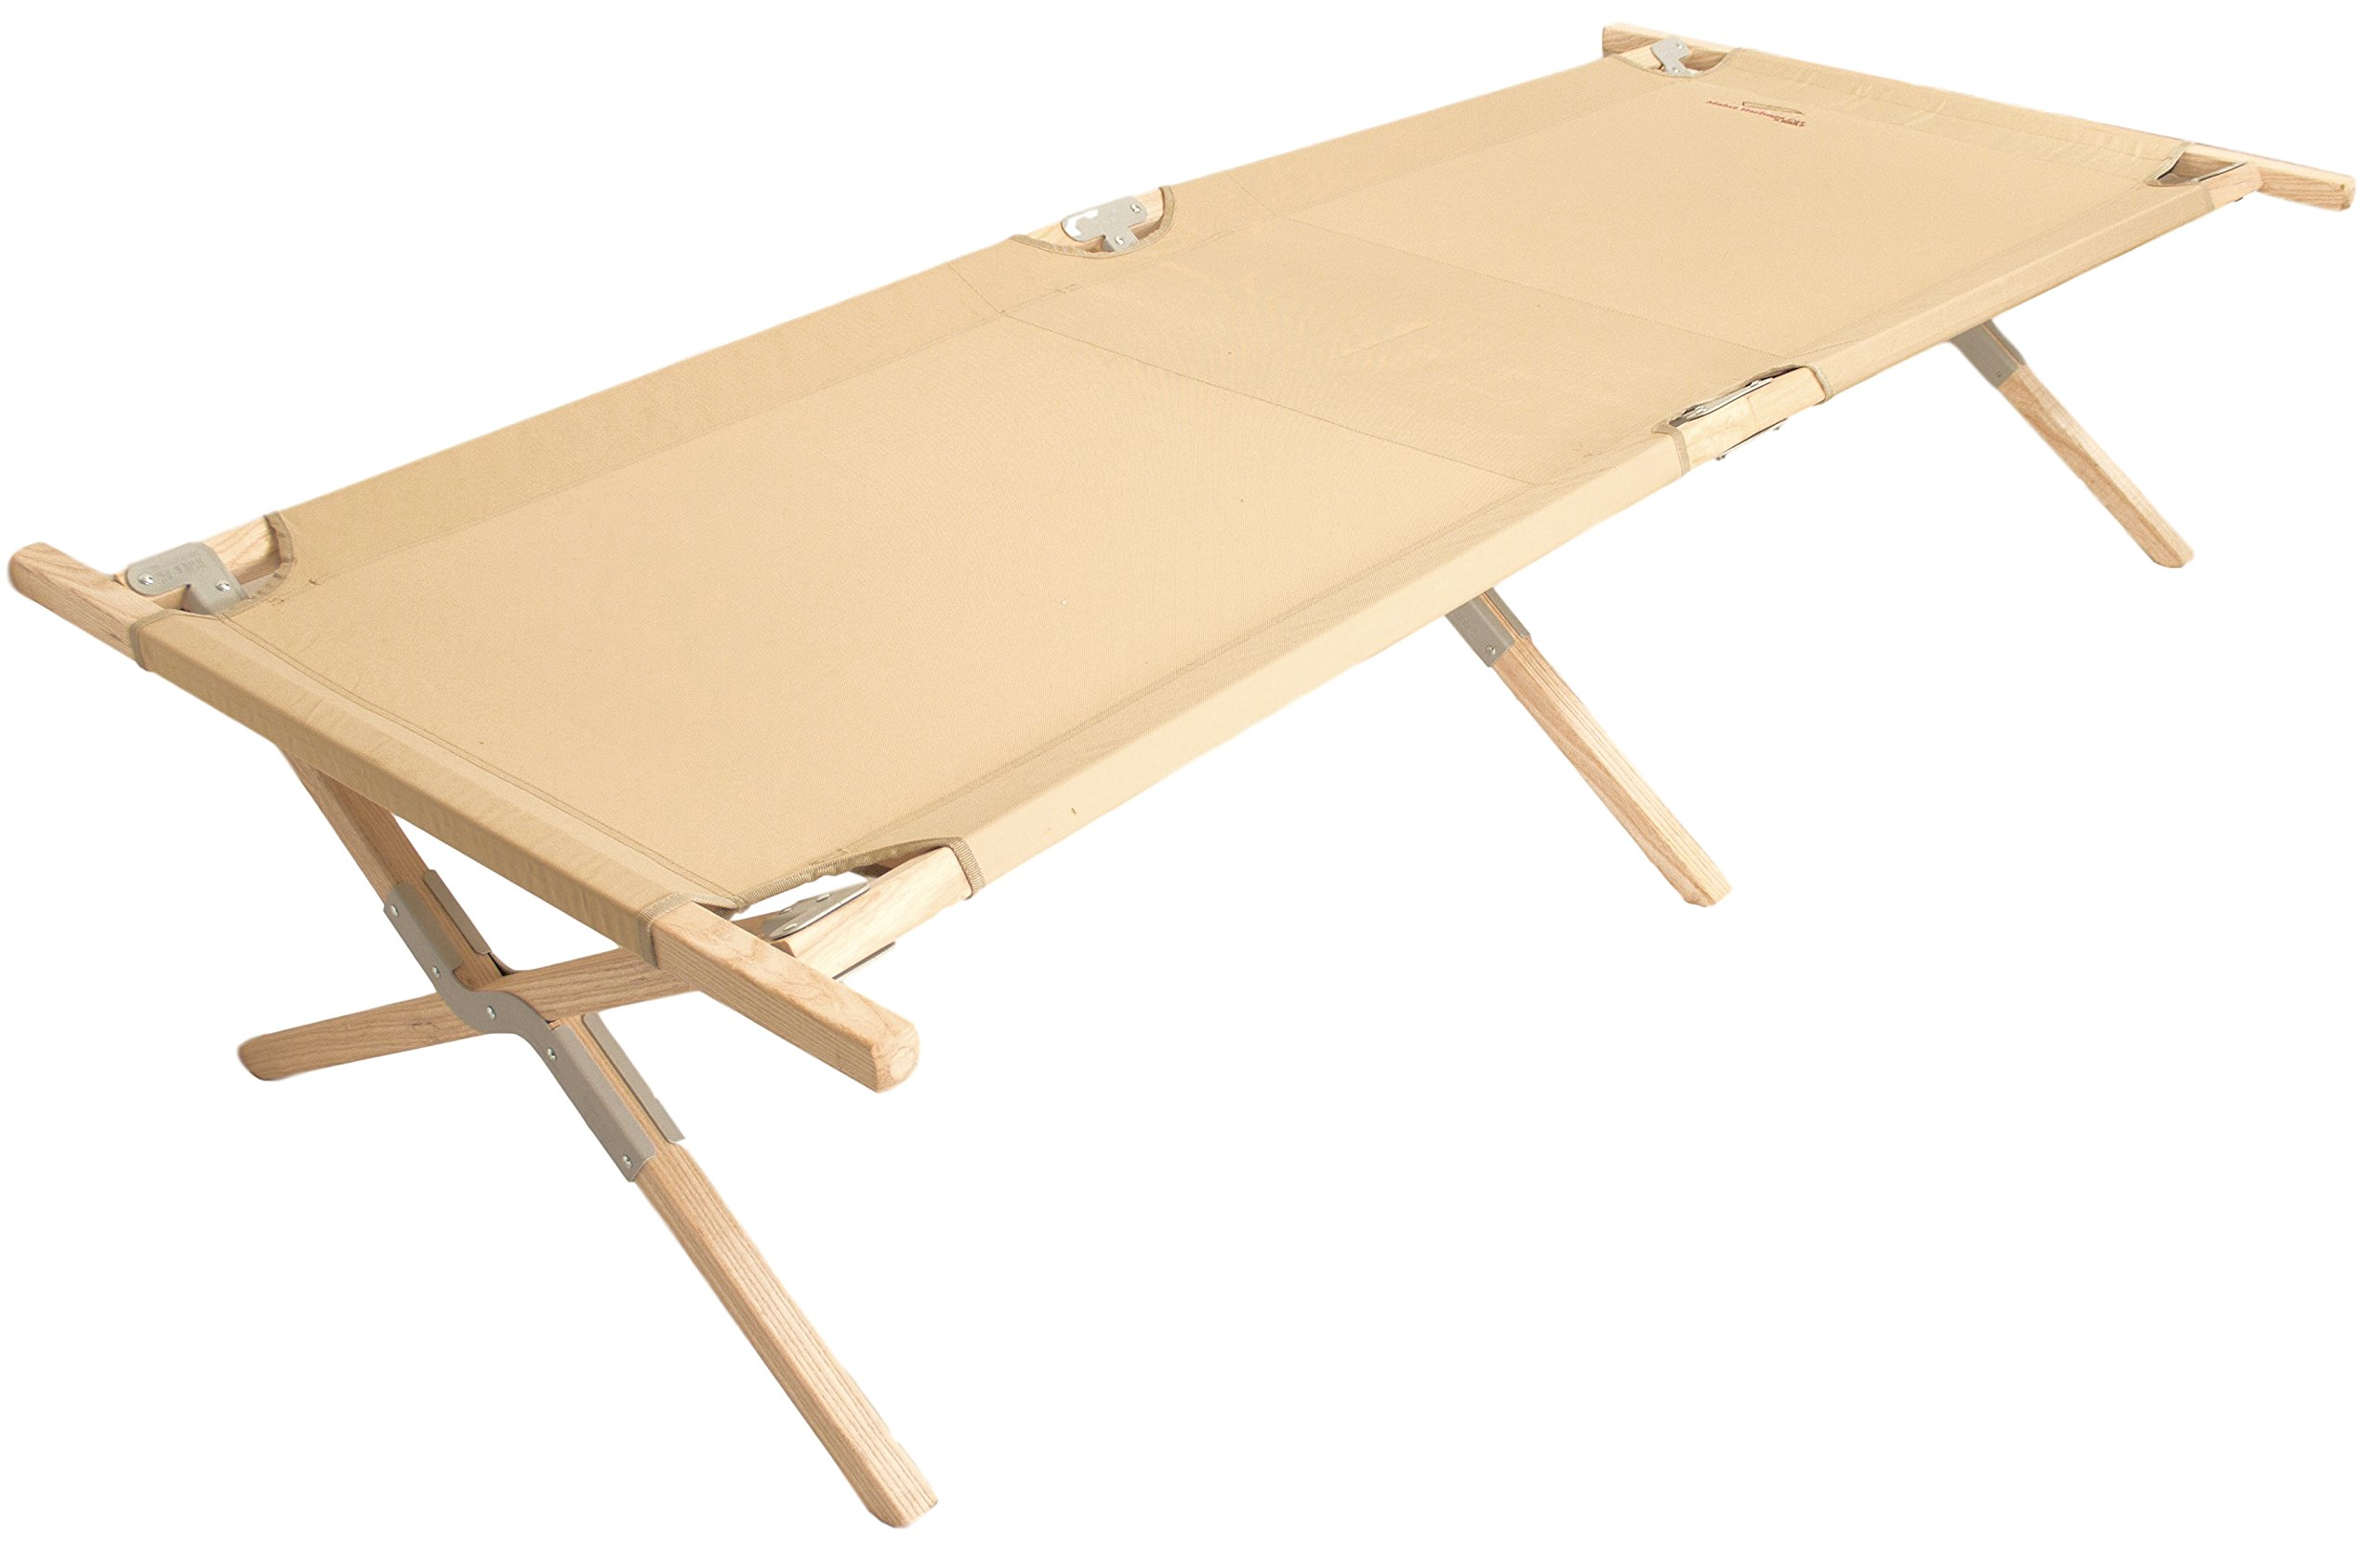 Maine Heritage Cot, folding cot by Byer of Maine by Byer of Maine (Image #1)